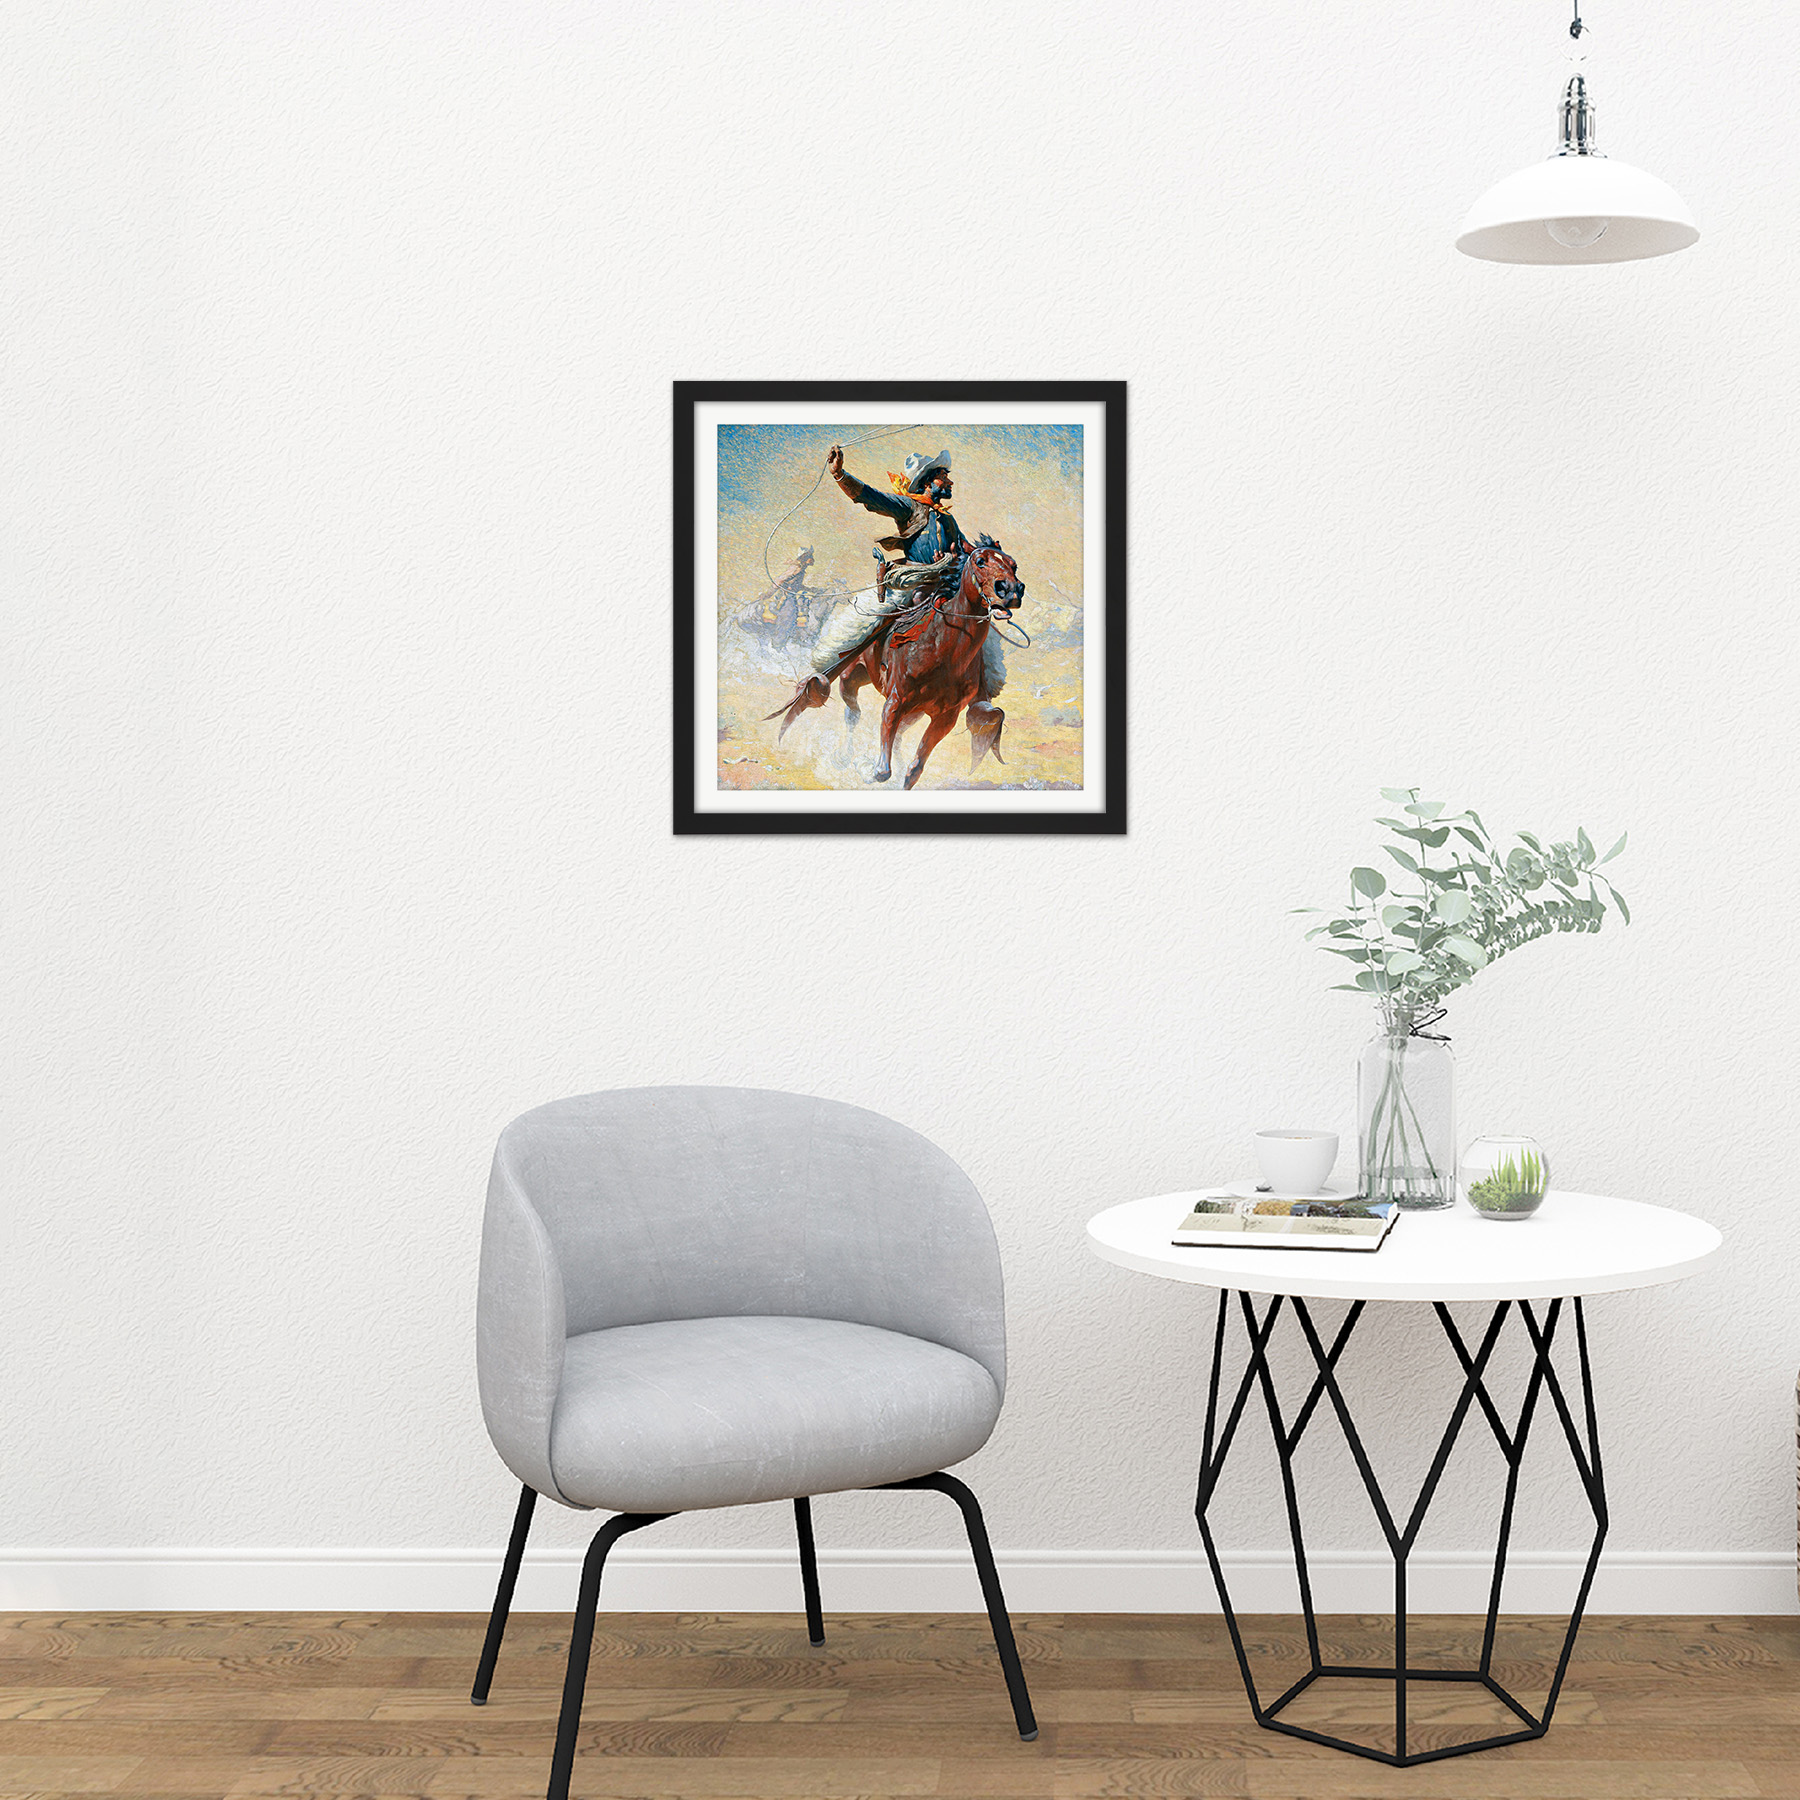 Leigh-The-Roping-Cowboy-Lasso-Horse-Painting-Square-Framed-Wall-Art-16X16-In thumbnail 3